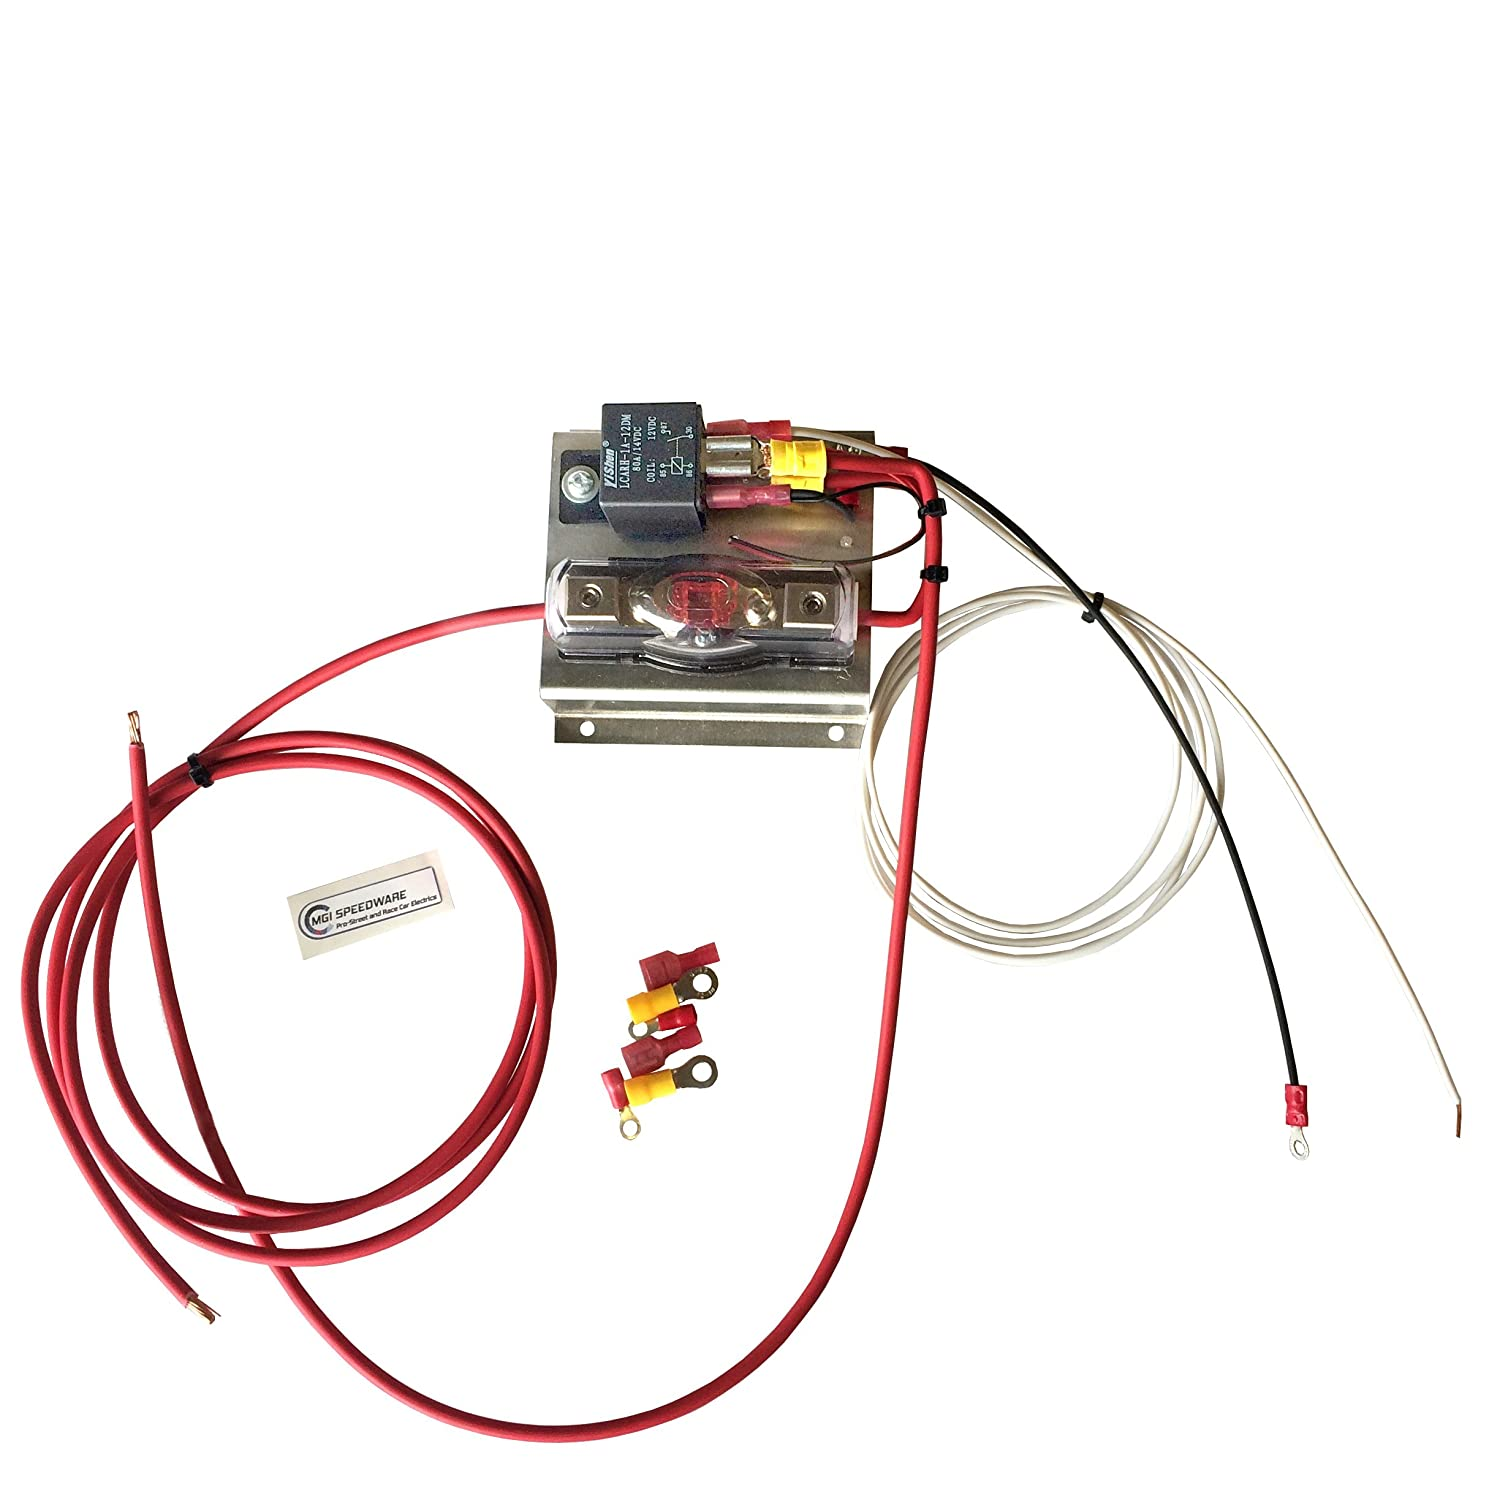 6 Relay MGI SpeedWare Relay Panel Box and Wiring Block Kit with 12 Volt DC Automotive Relay Switches and LED Blade Fuses